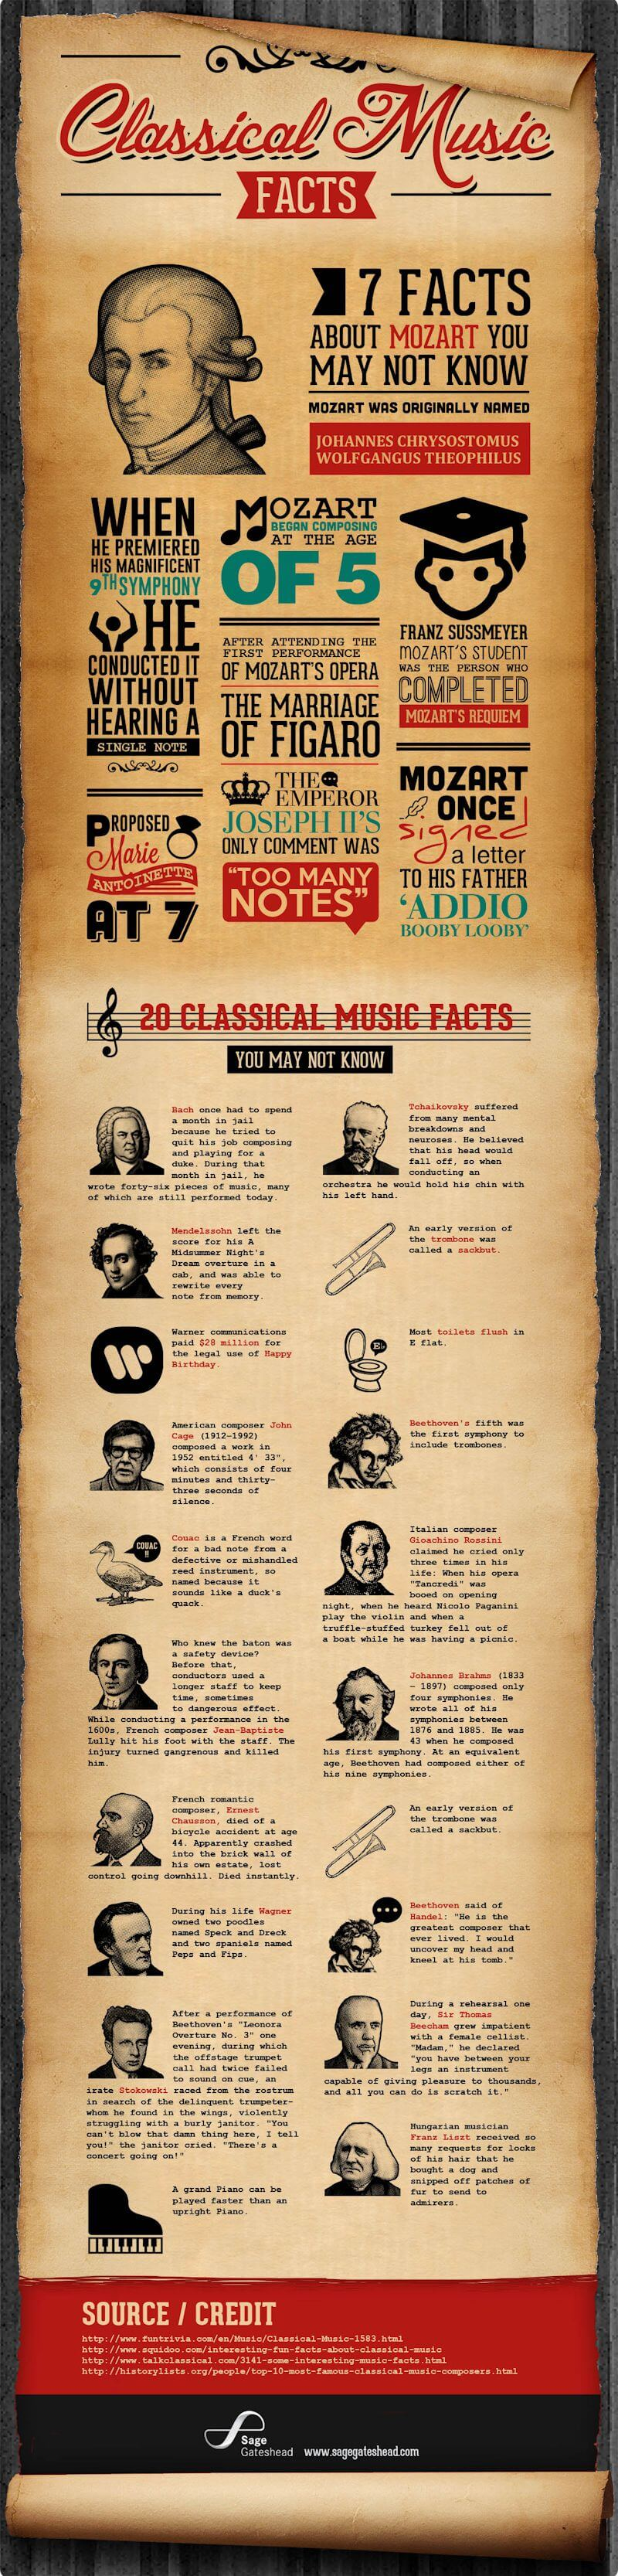 27 Interesting Classical Music Facts Tipsographic